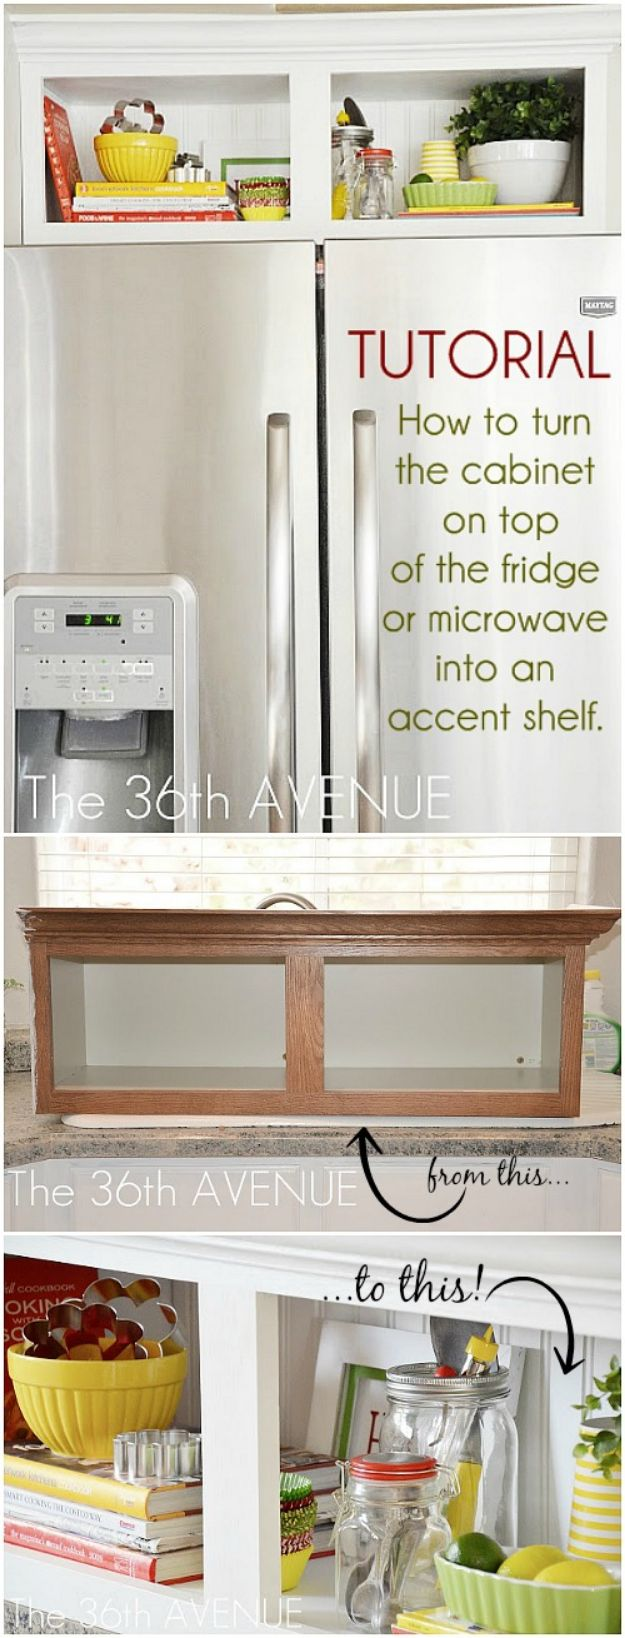 DIY Kitchen Cabinets - Kitchen Cabinet Accent - Makeover Ideas for Kitchen Cabinet - Build and Design Kitchen Cabinet Projects on A Budget - Cheap Reface Idea and Tutorial